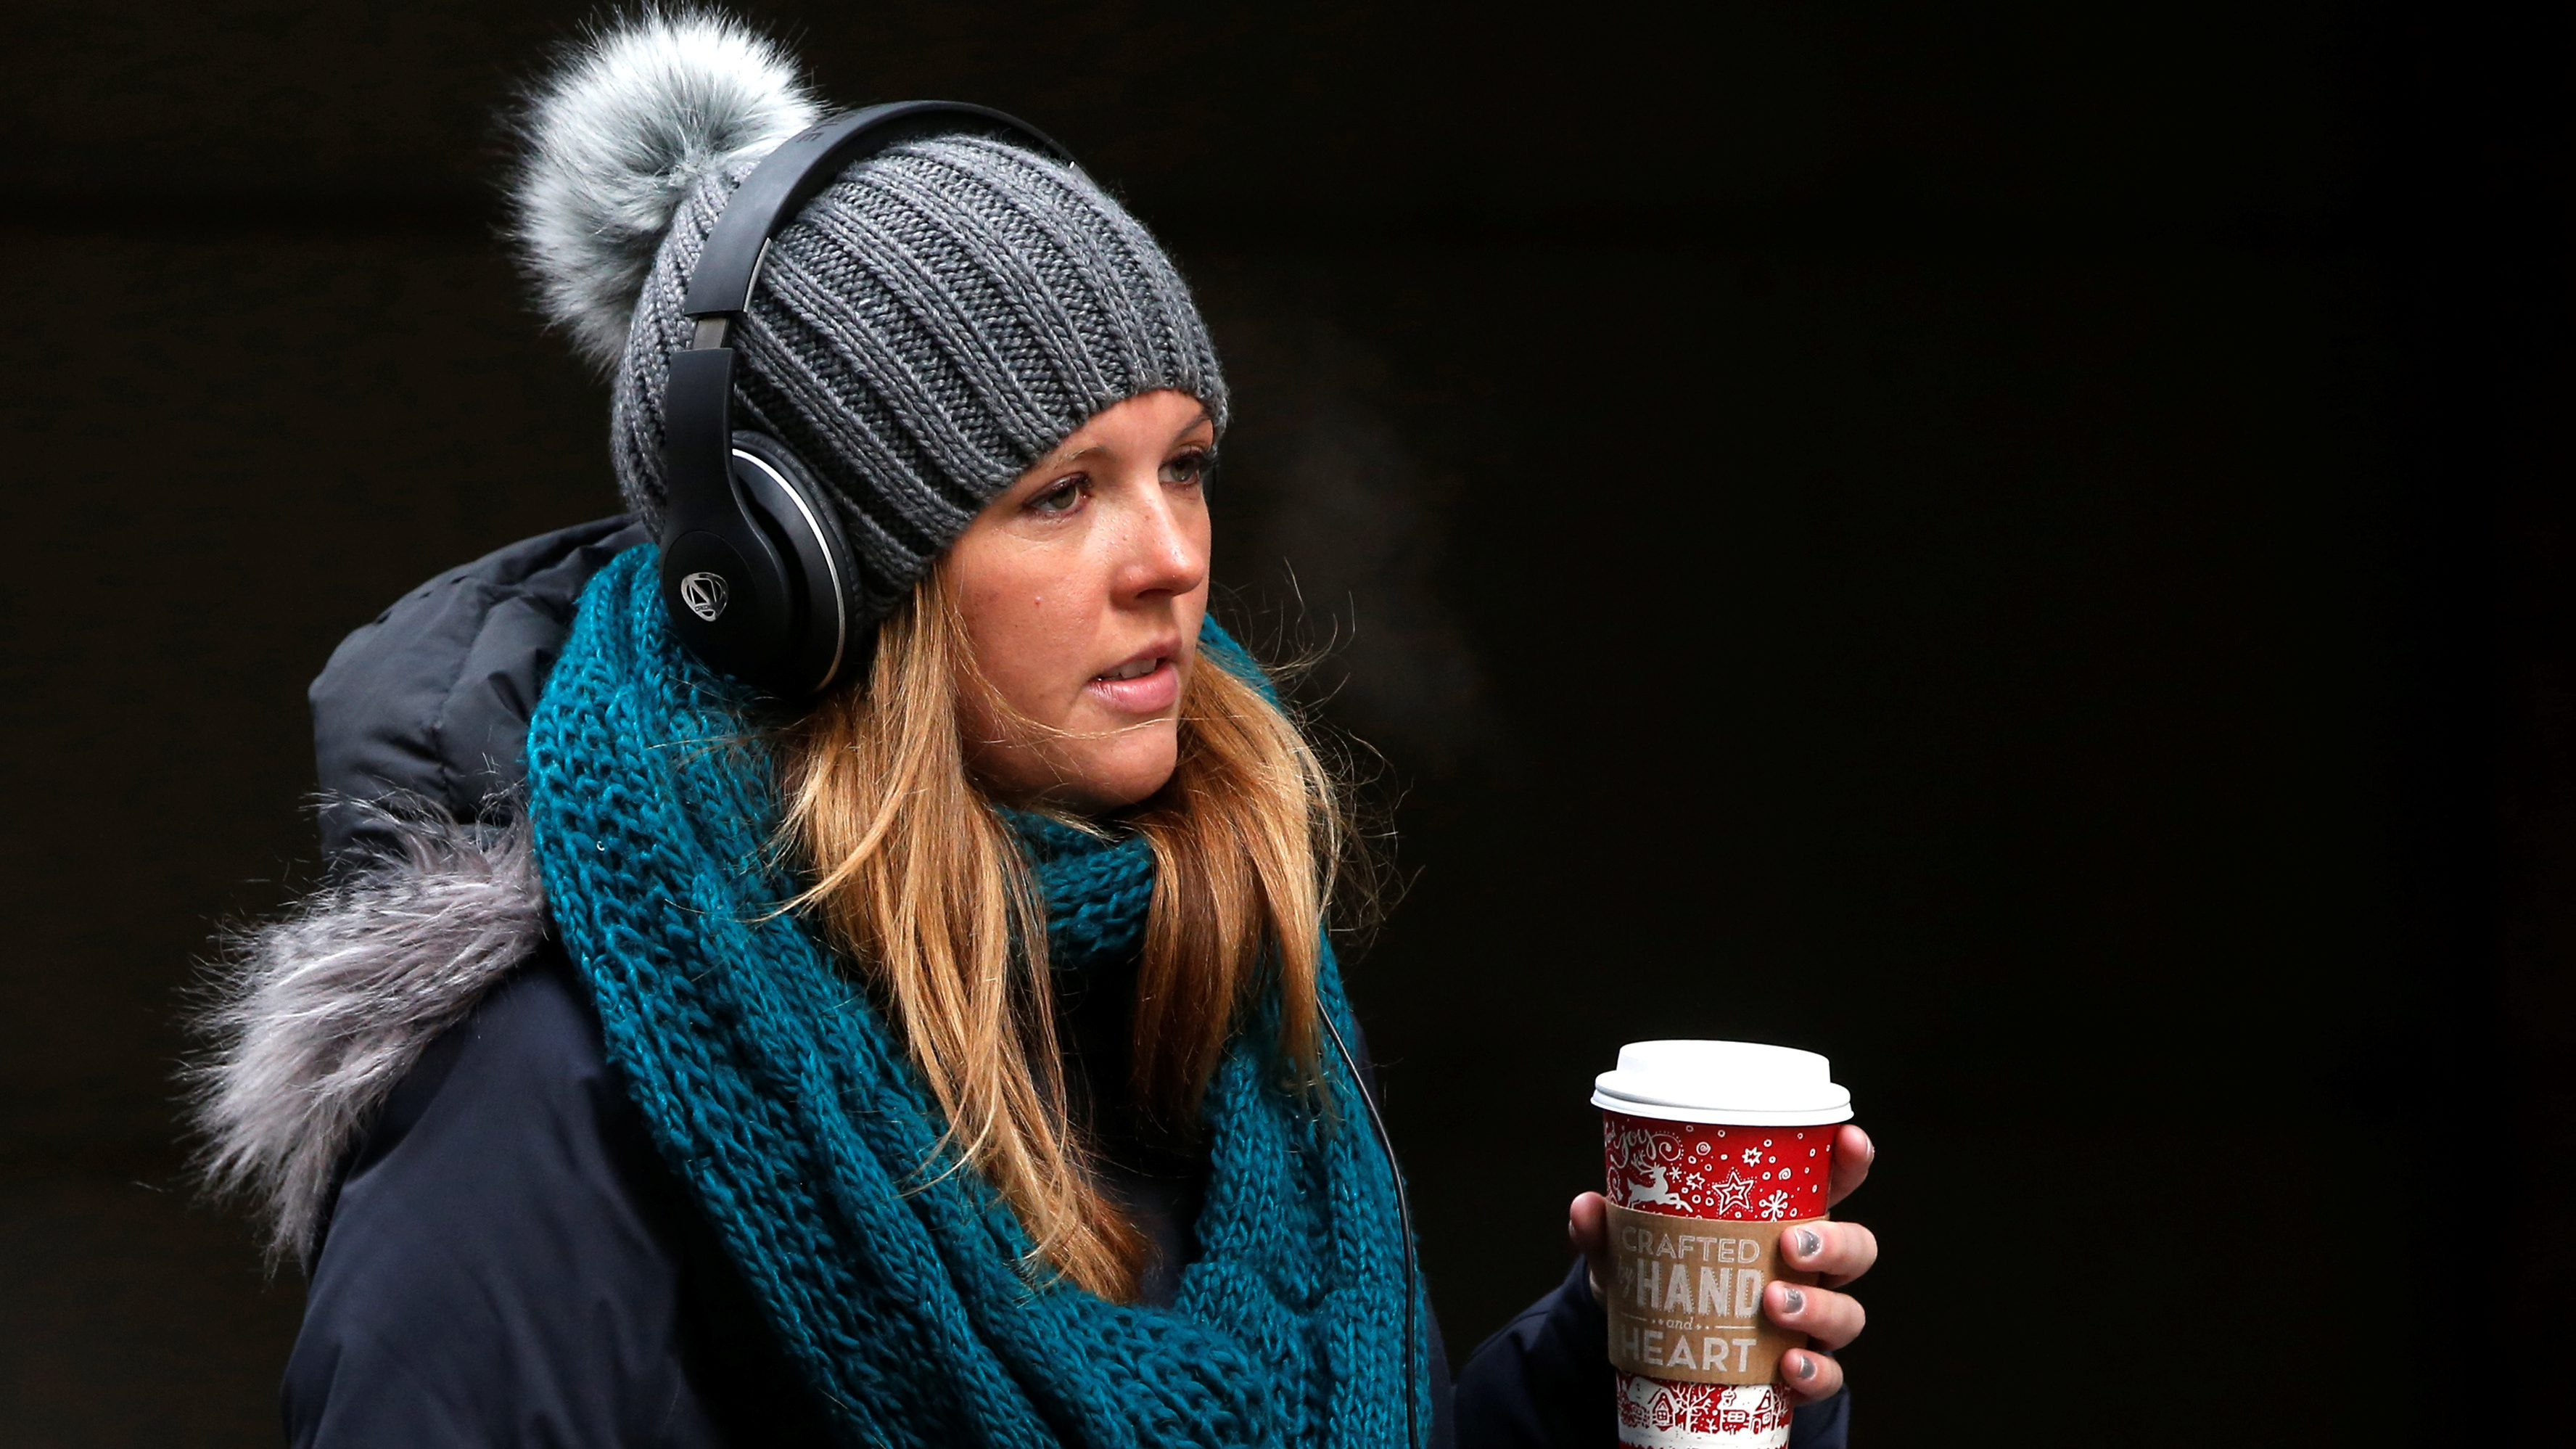 A woman walks bundled up from the cold on Wall St. during the morning commute in New York